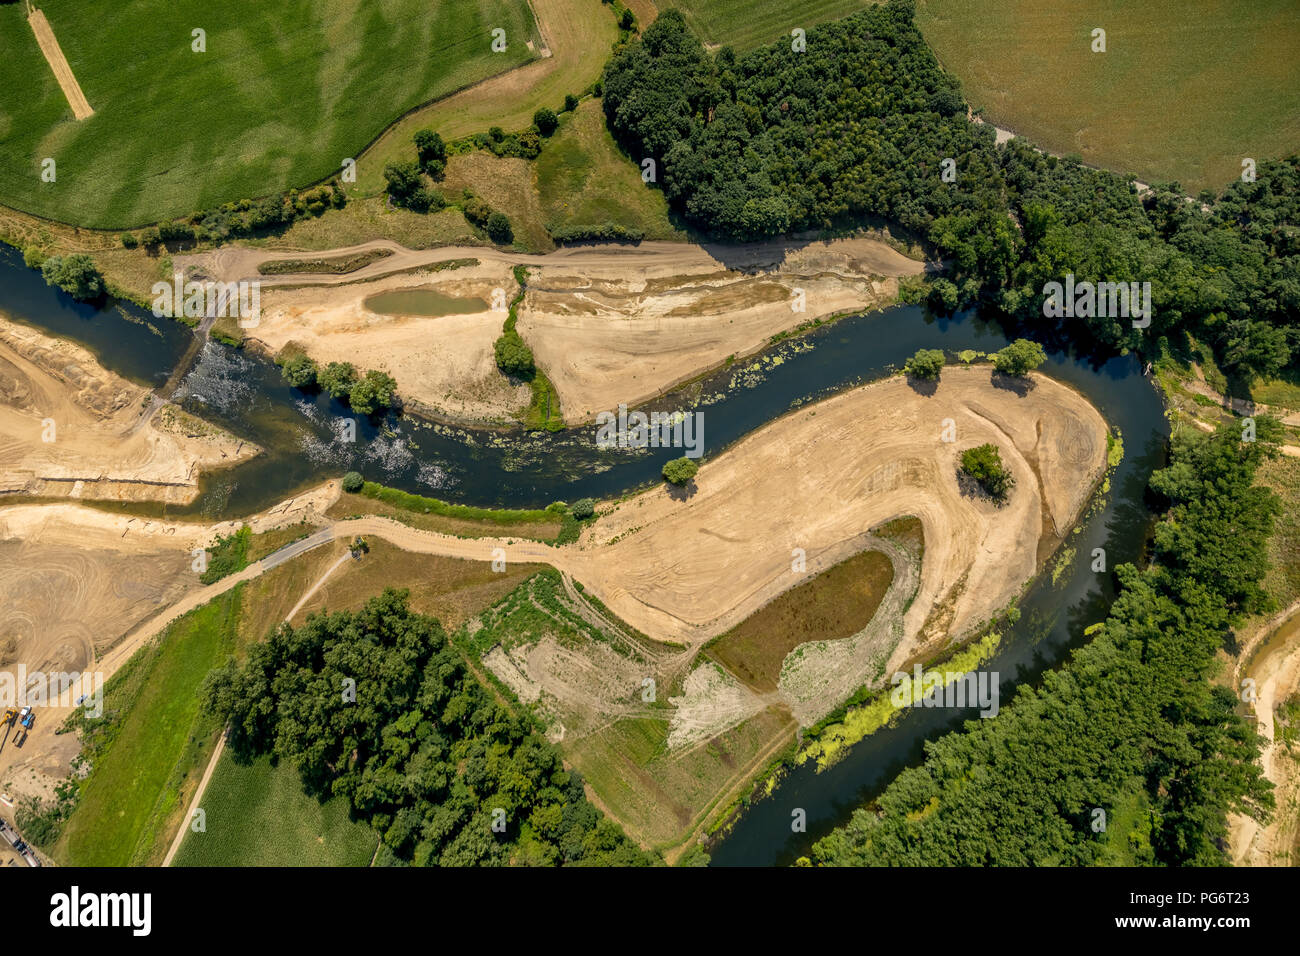 Restoration of theriver Lippe the outside in the area of city limits Olfen and dates, to Krähenbusch, project Lippeverband, dates, Ruhr area, North Rh - Stock Image